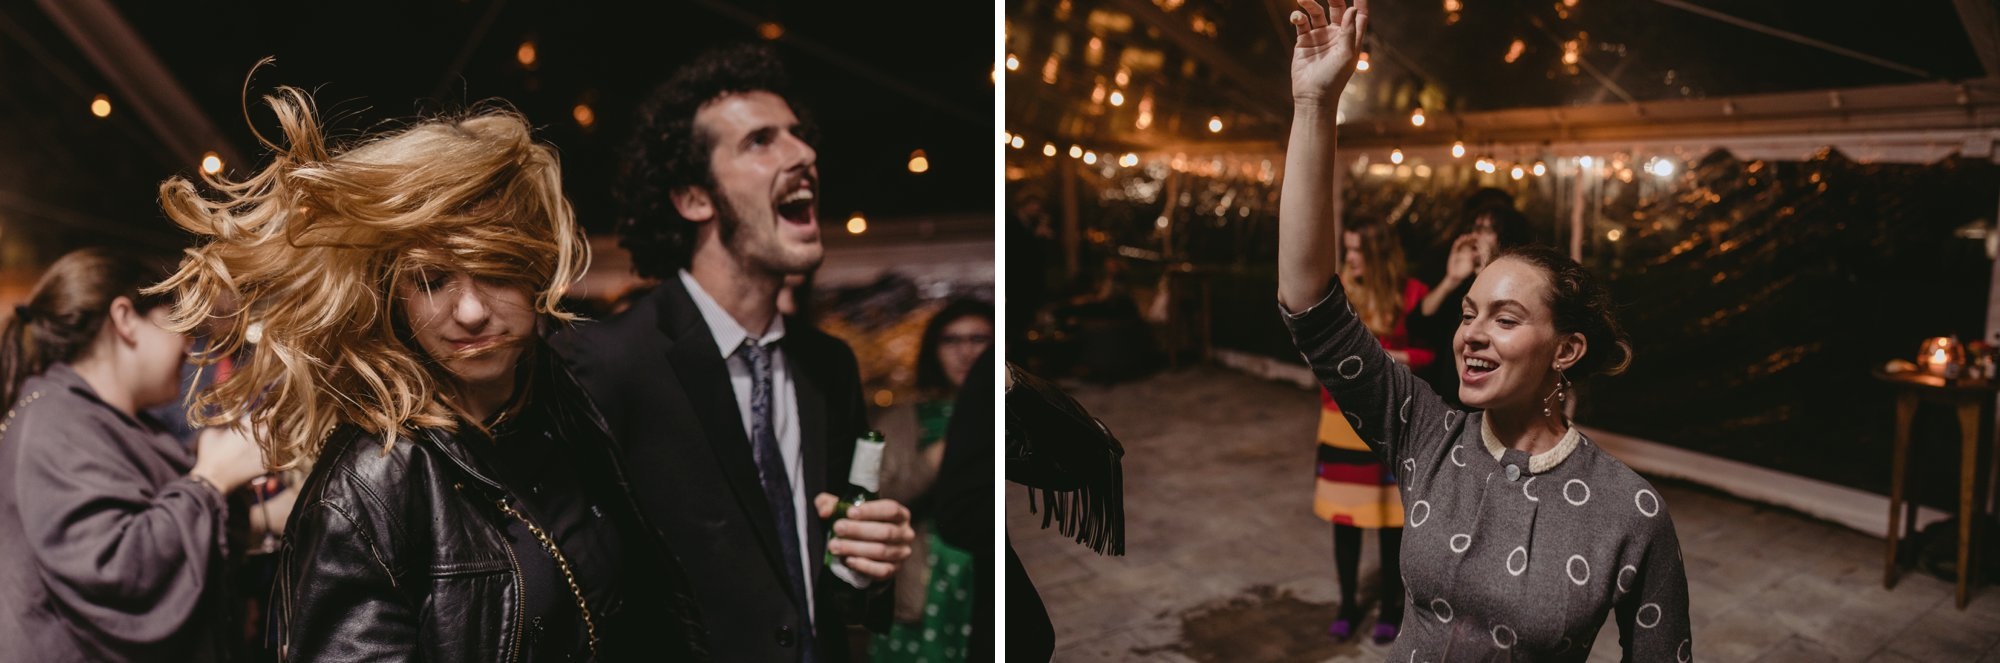 Autumn Richmond VA winery wedding at Upper Shirley Vineyards with lush garden florals and old Hollywood glamour rocking out